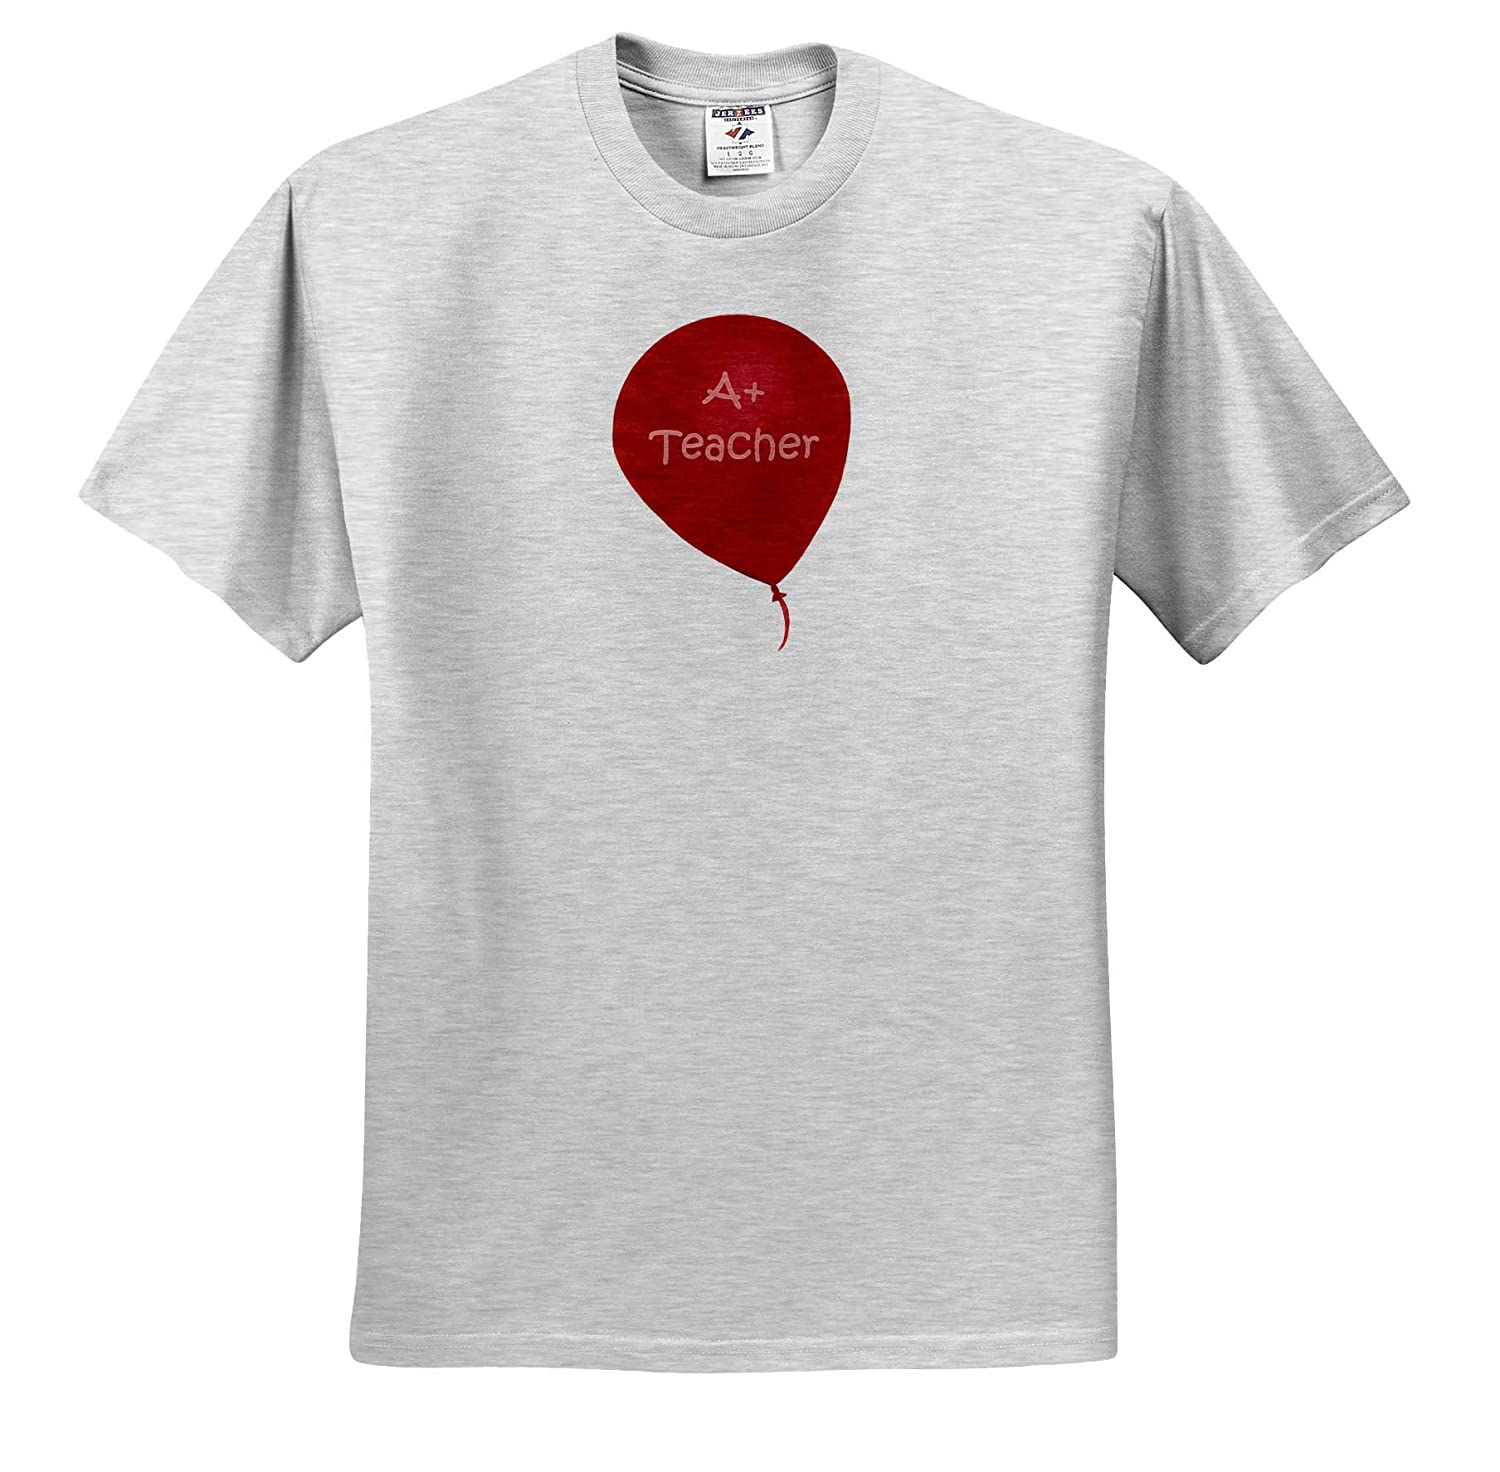 Adult T-Shirt XL 3dRose CherylsArt Teacher Painting of a Red Balloon with A Plus Teacher in Pink Letters ts/_315616